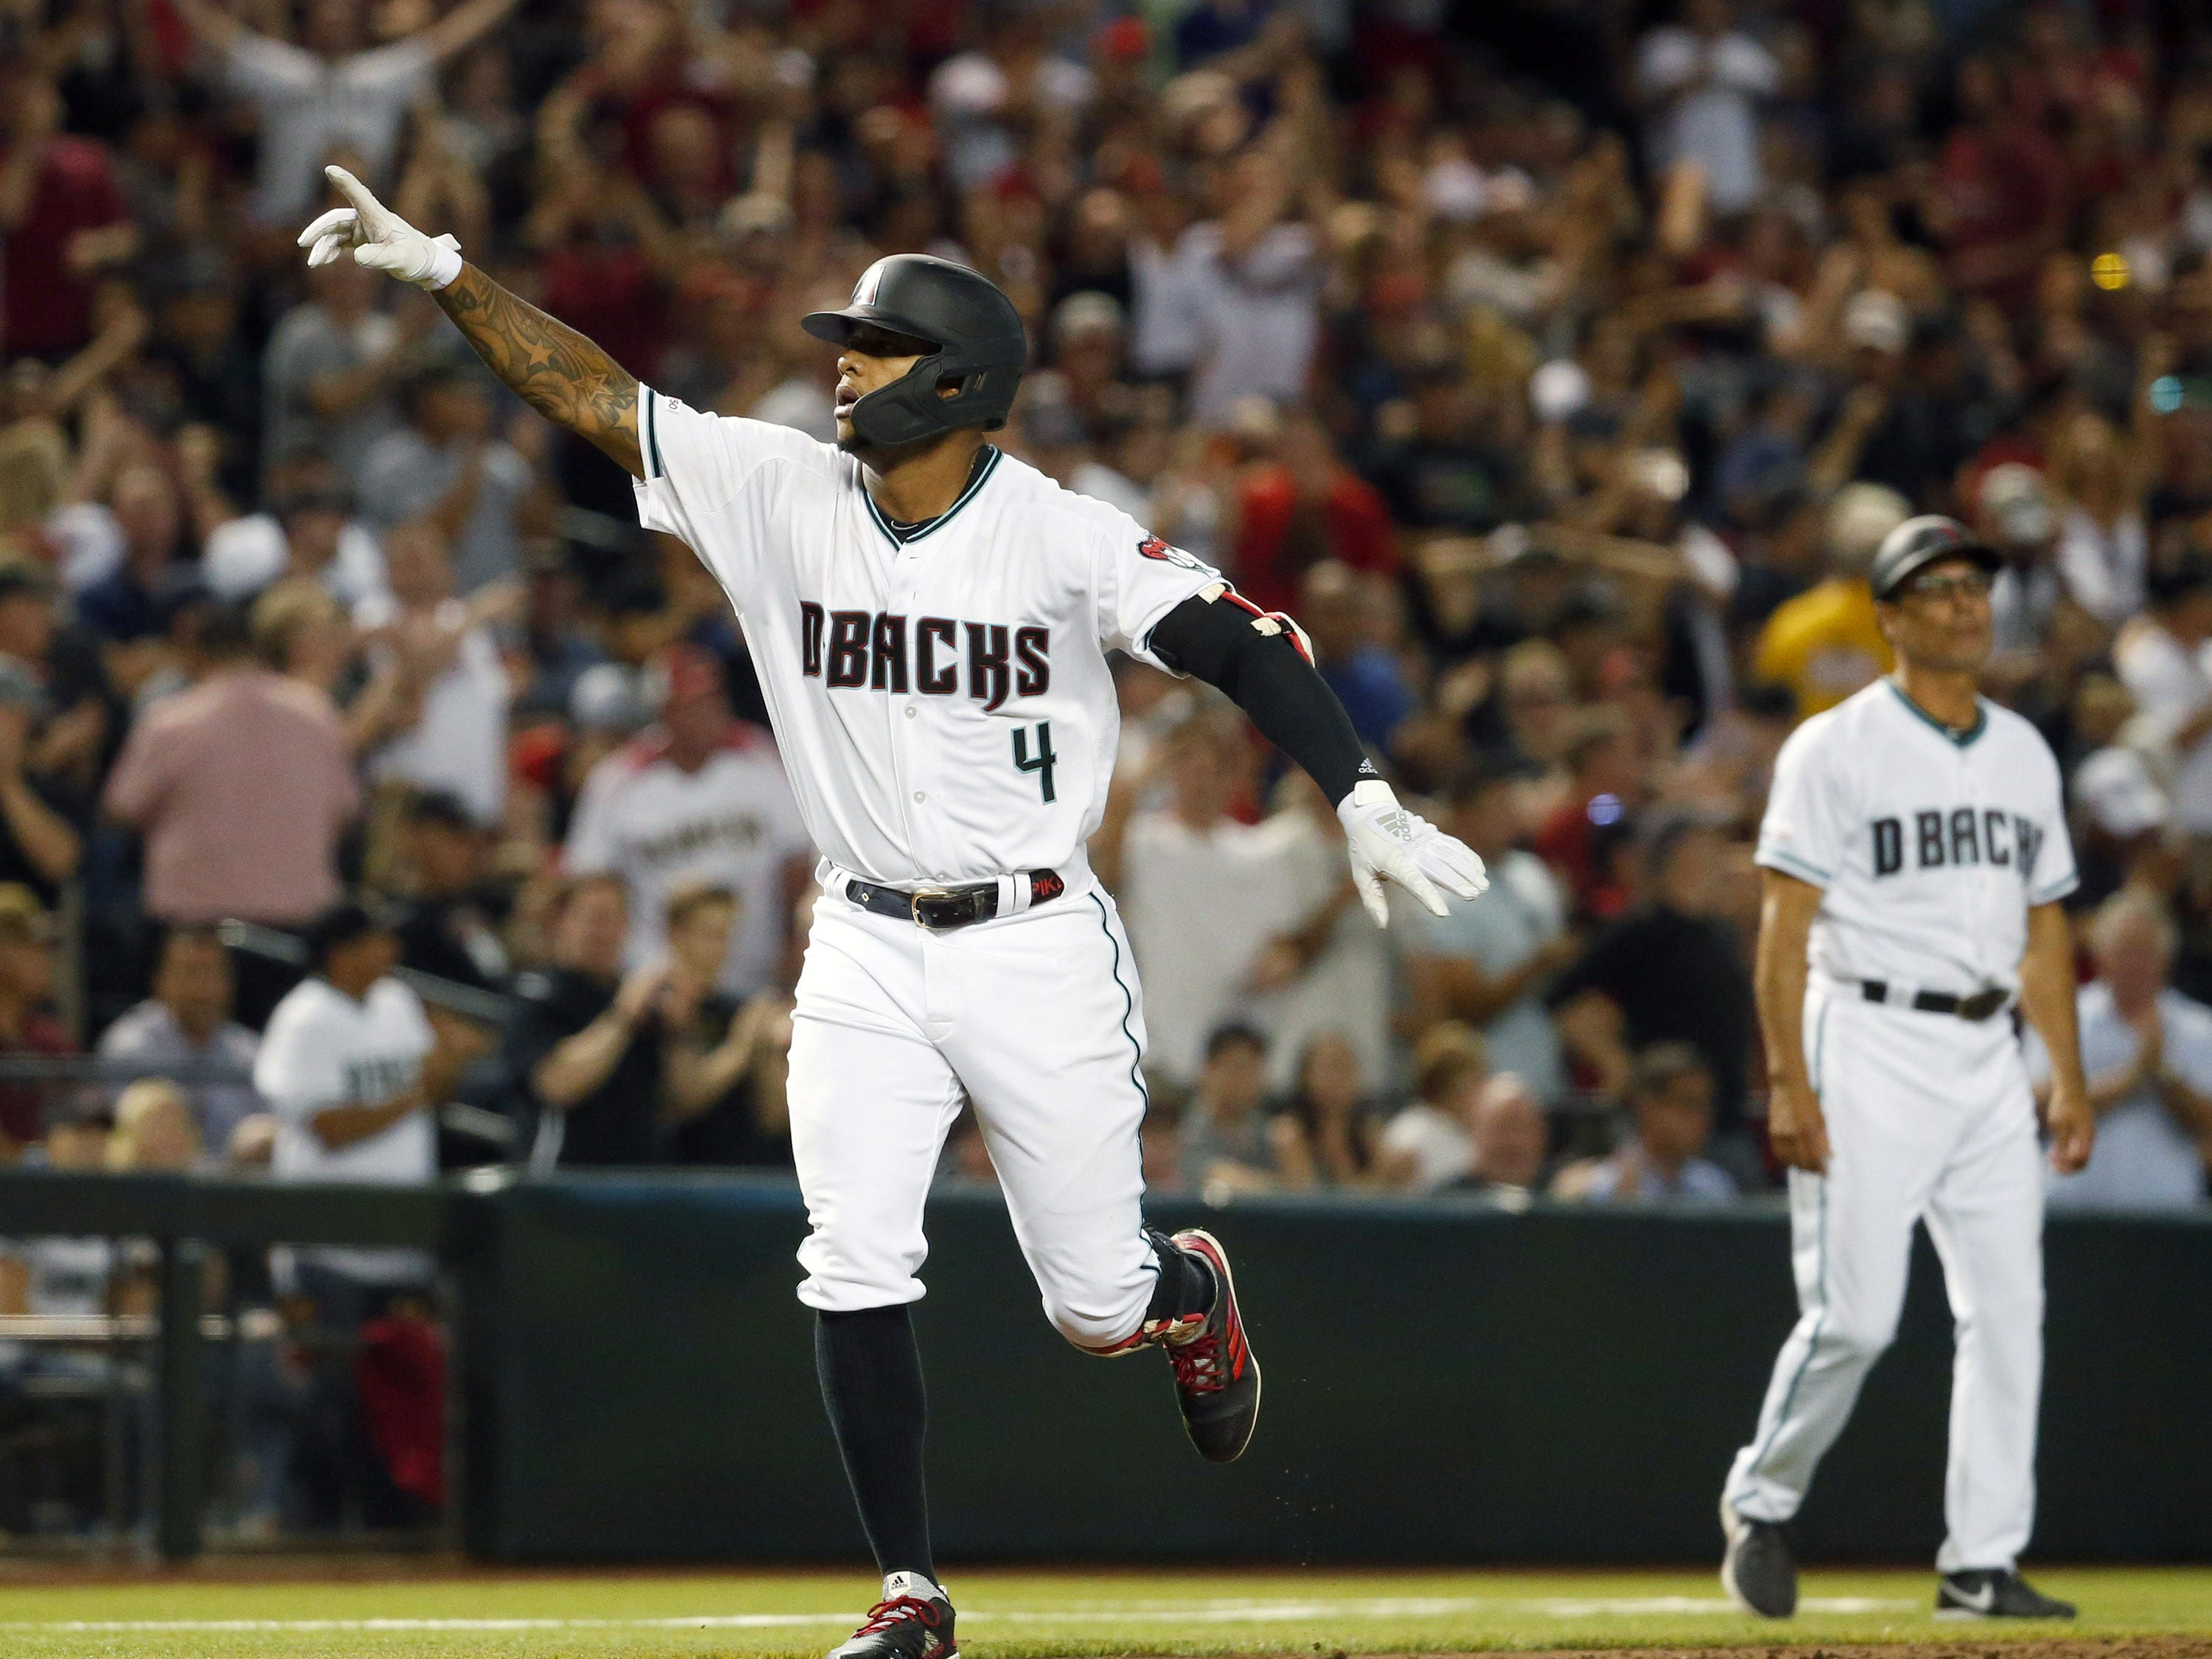 Arizona Diamondbacks shortstop Ketel Marte's (4) rounds third base after hitting a grand slam ball in the sixth inning of a Opening Day game  against Boston Red Sox at Chase Field in Phoenix on April 5.